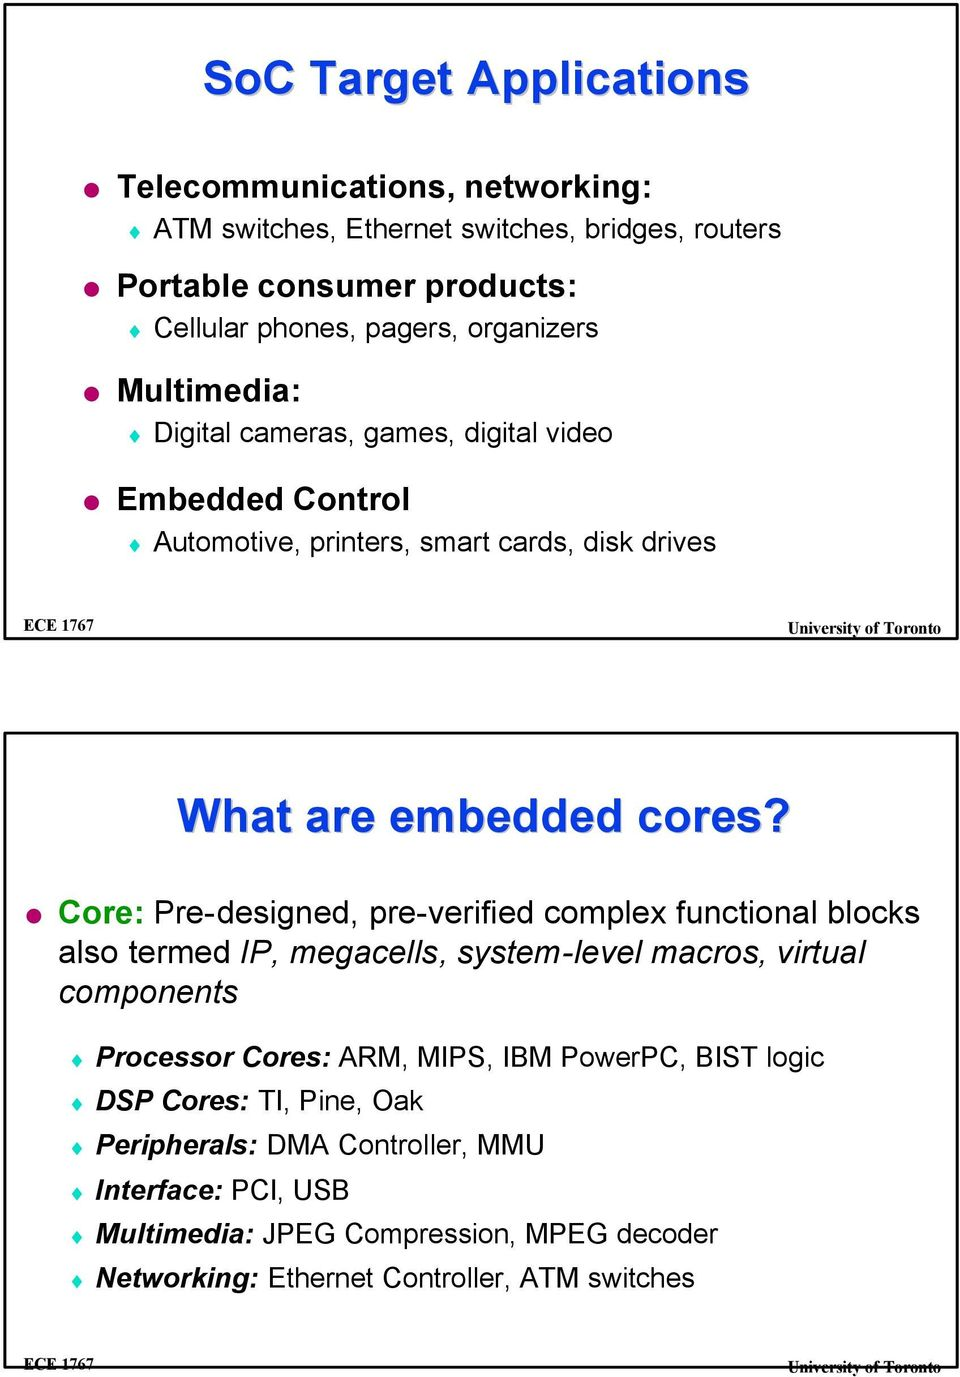 Core: Pre-designed, pre-verified complex functional blocks also termed IP, megacells, system-level macros, virtual components Processor Cores: ARM, MIPS, IBM